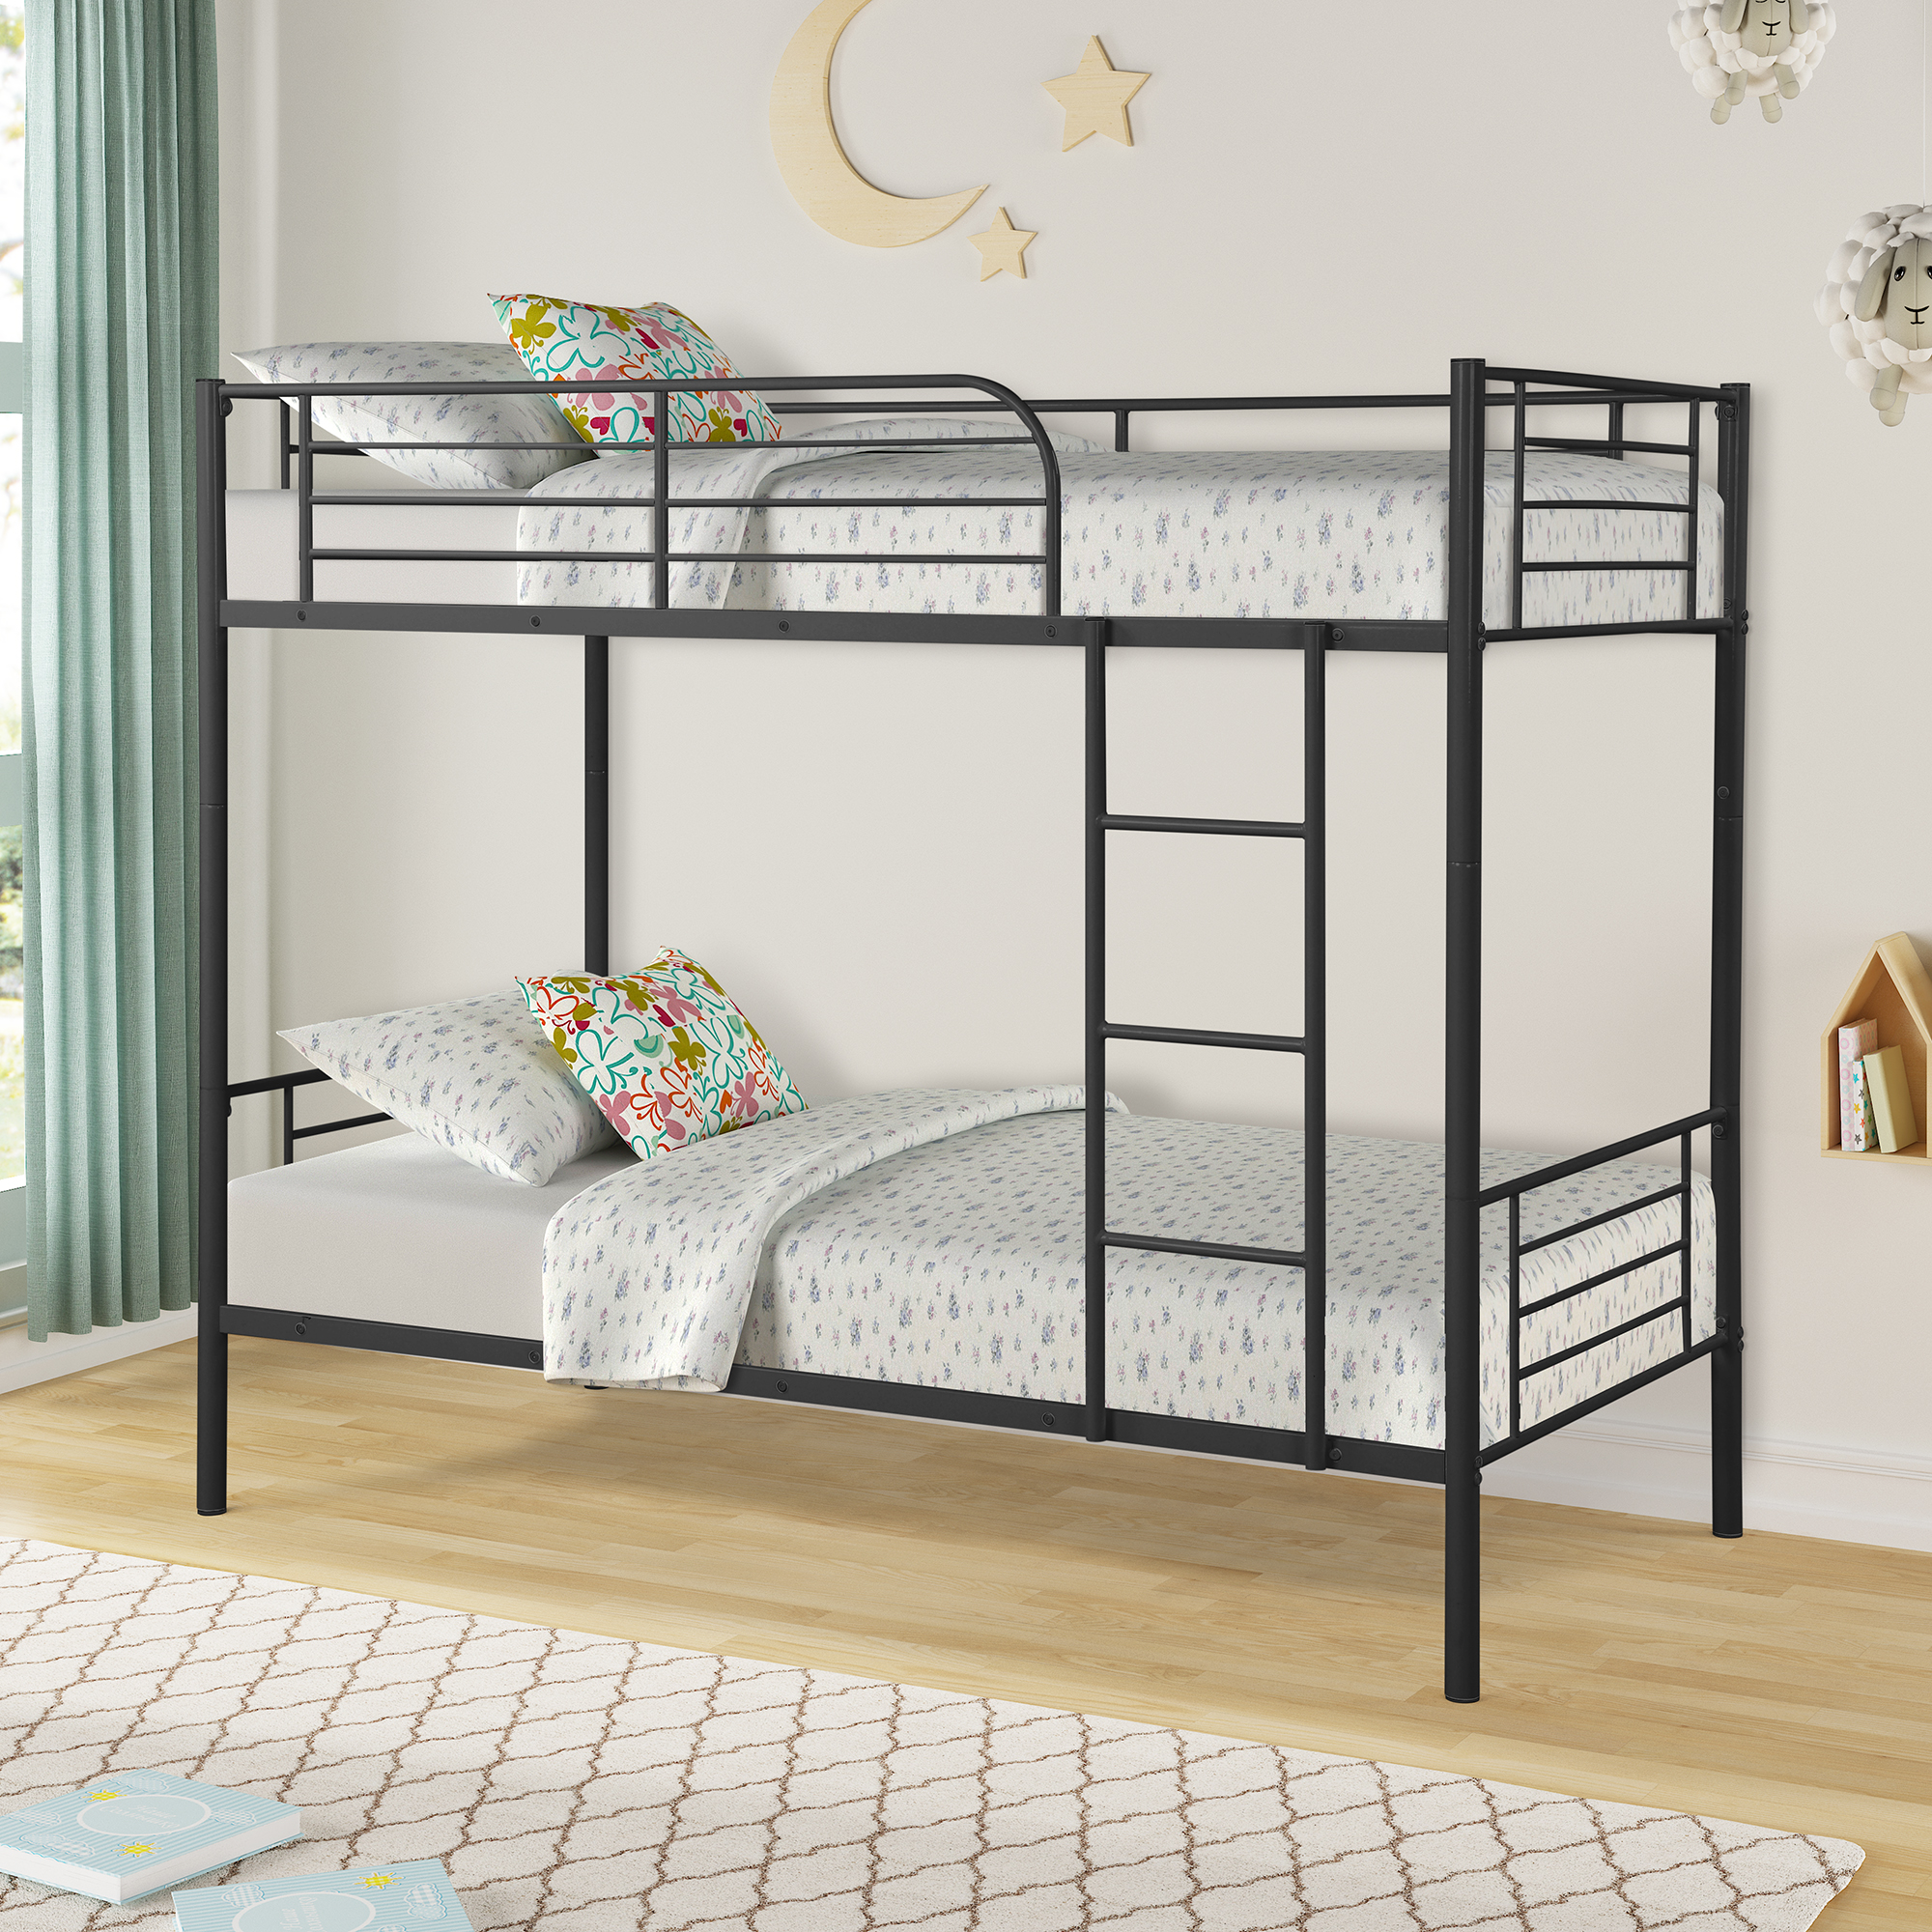 free sample cheap price wholesale New design steel double decker queen size Good quality heavy duty steel metal bunk bed